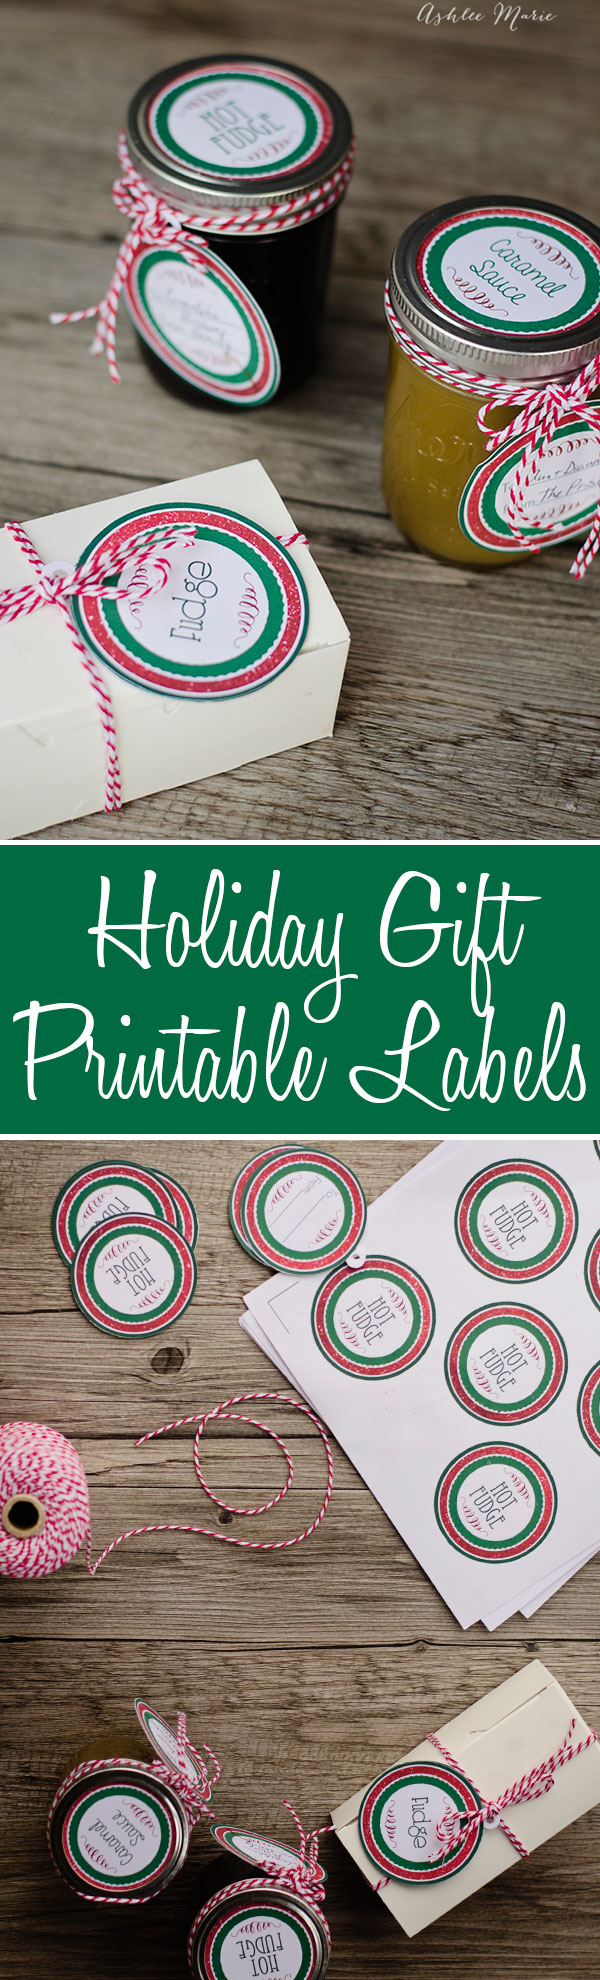 free printables for the perfect edible neighbors gifts, hot fudge, caramel sauce, popcorn balls and fudge